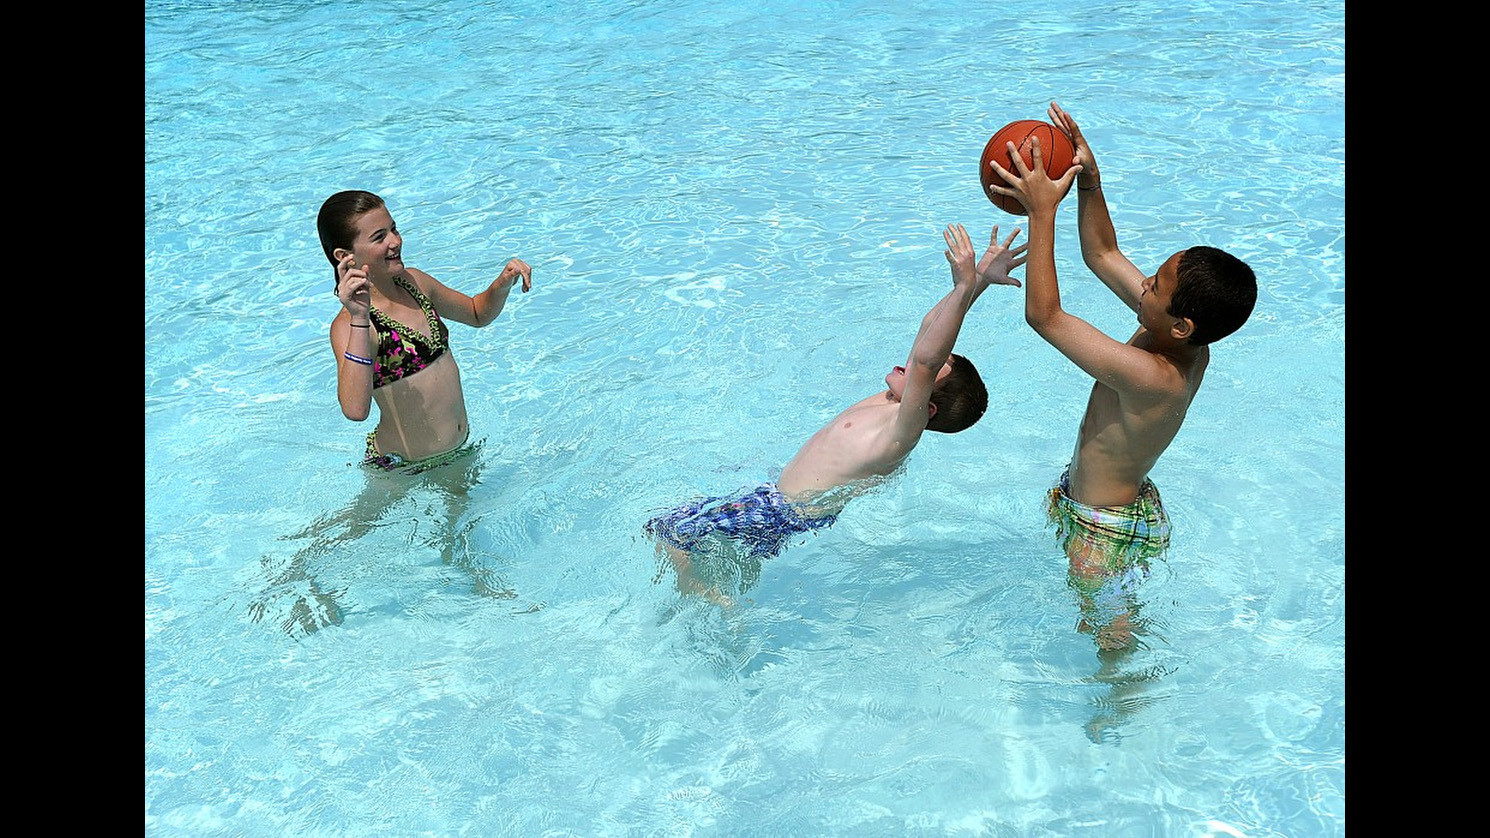 Local Swimming Holes And Public Pools To Cool Off Hartford Courant